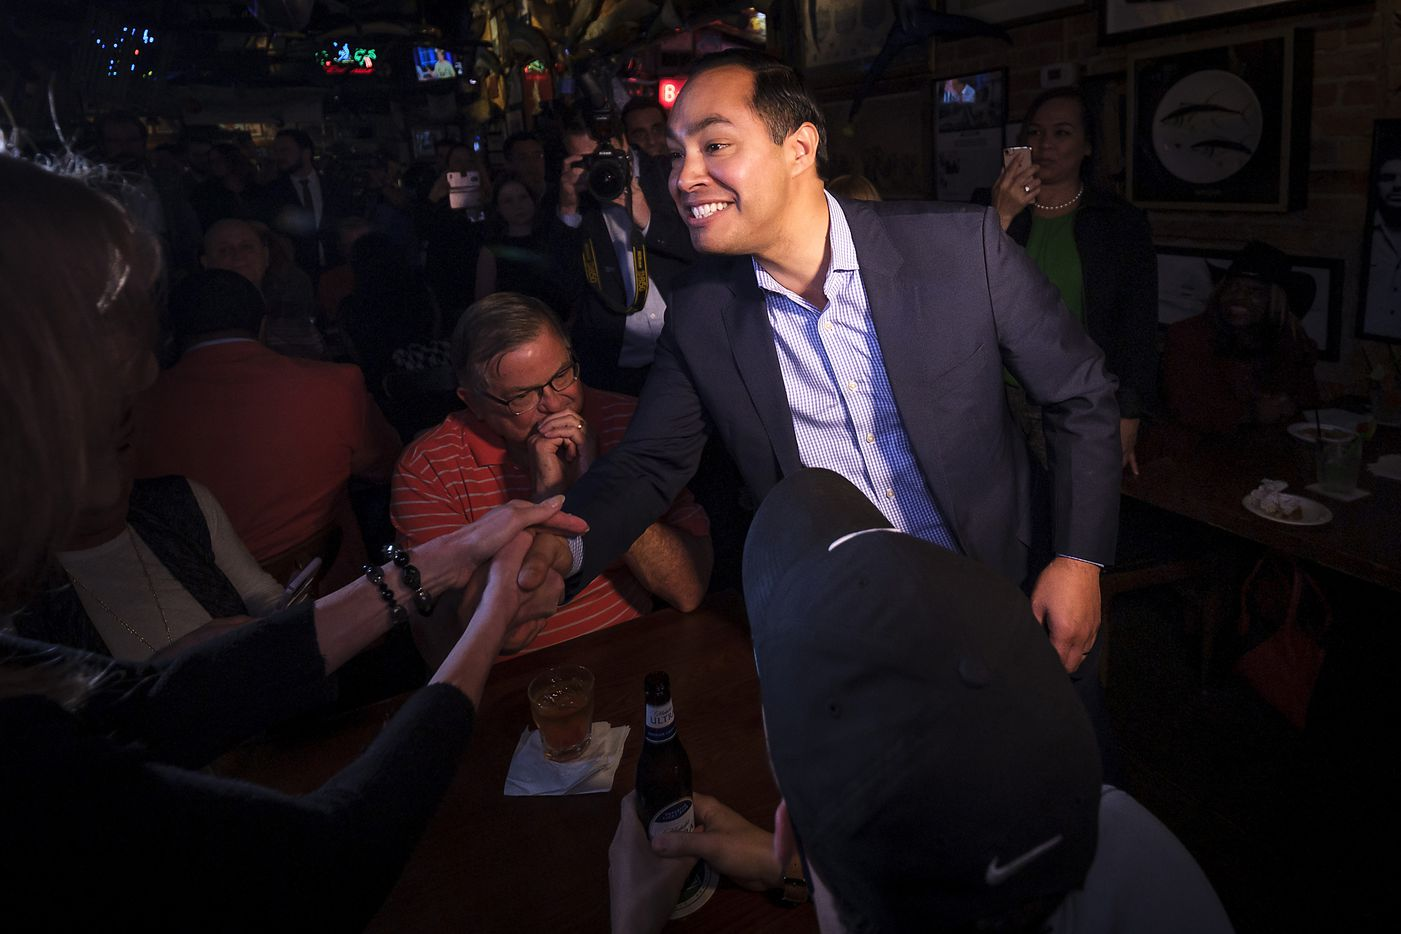 Presidential candidate Julian Castro arrives for a campaign event at St. Pete's Dancing Marlin in Deep Ellum on Tuesday, March 19, 2019, in Dallas.